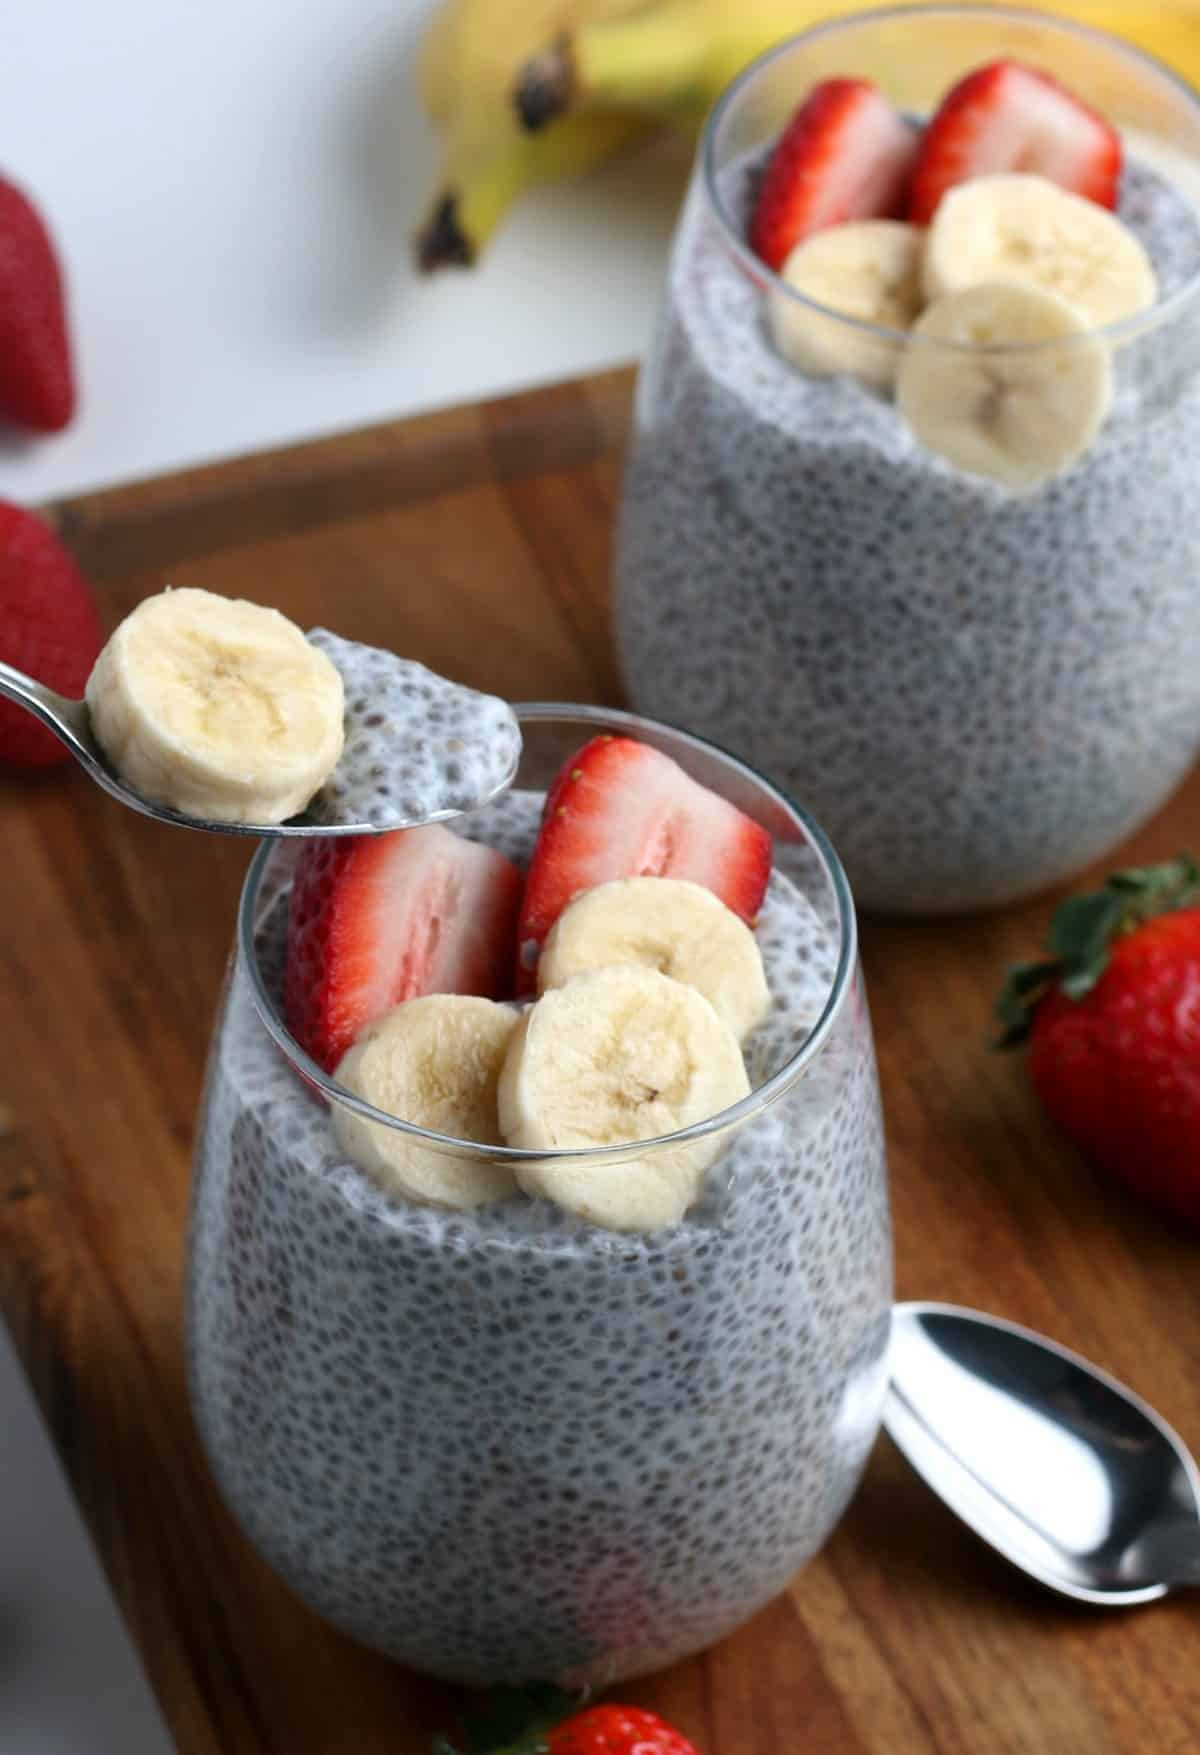 A spoon is dipping out a spoonful of vanilla chia pudding.